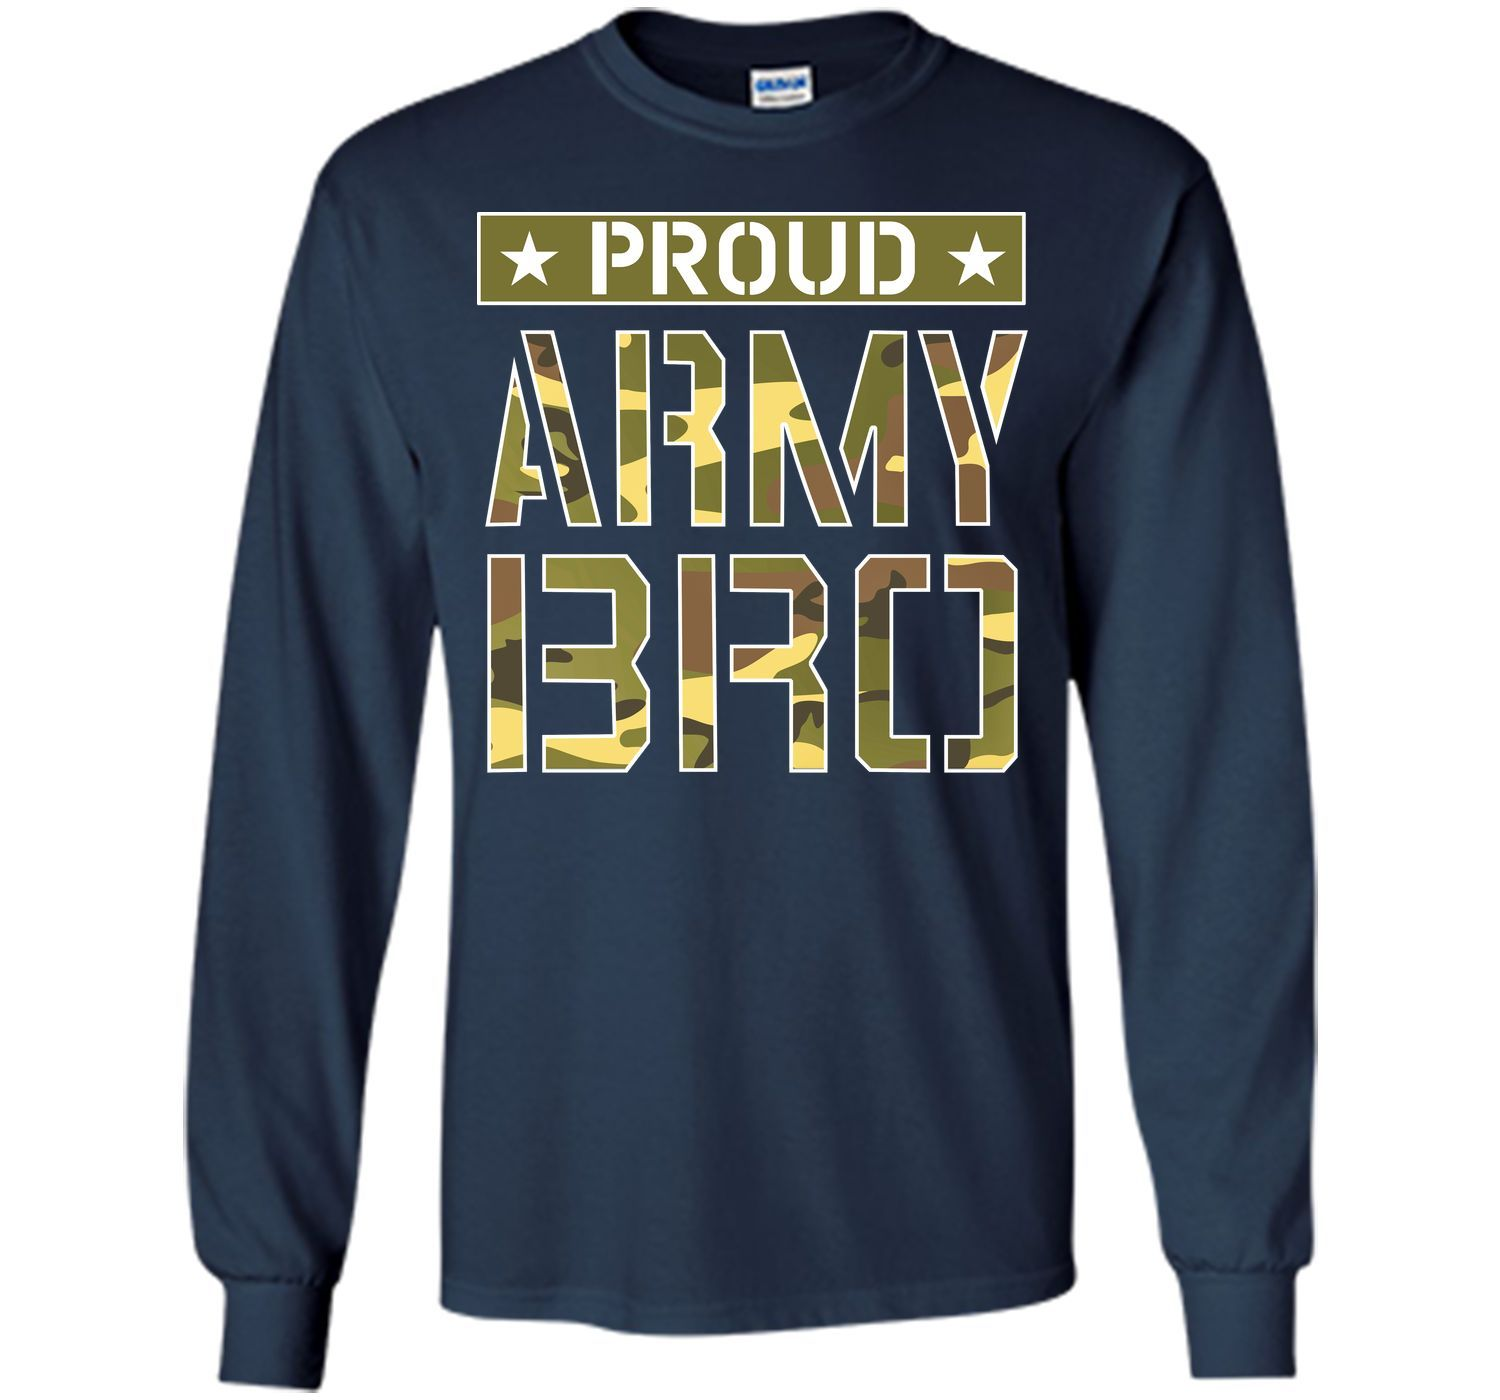 PROUD ARMY BRO T-Shirt